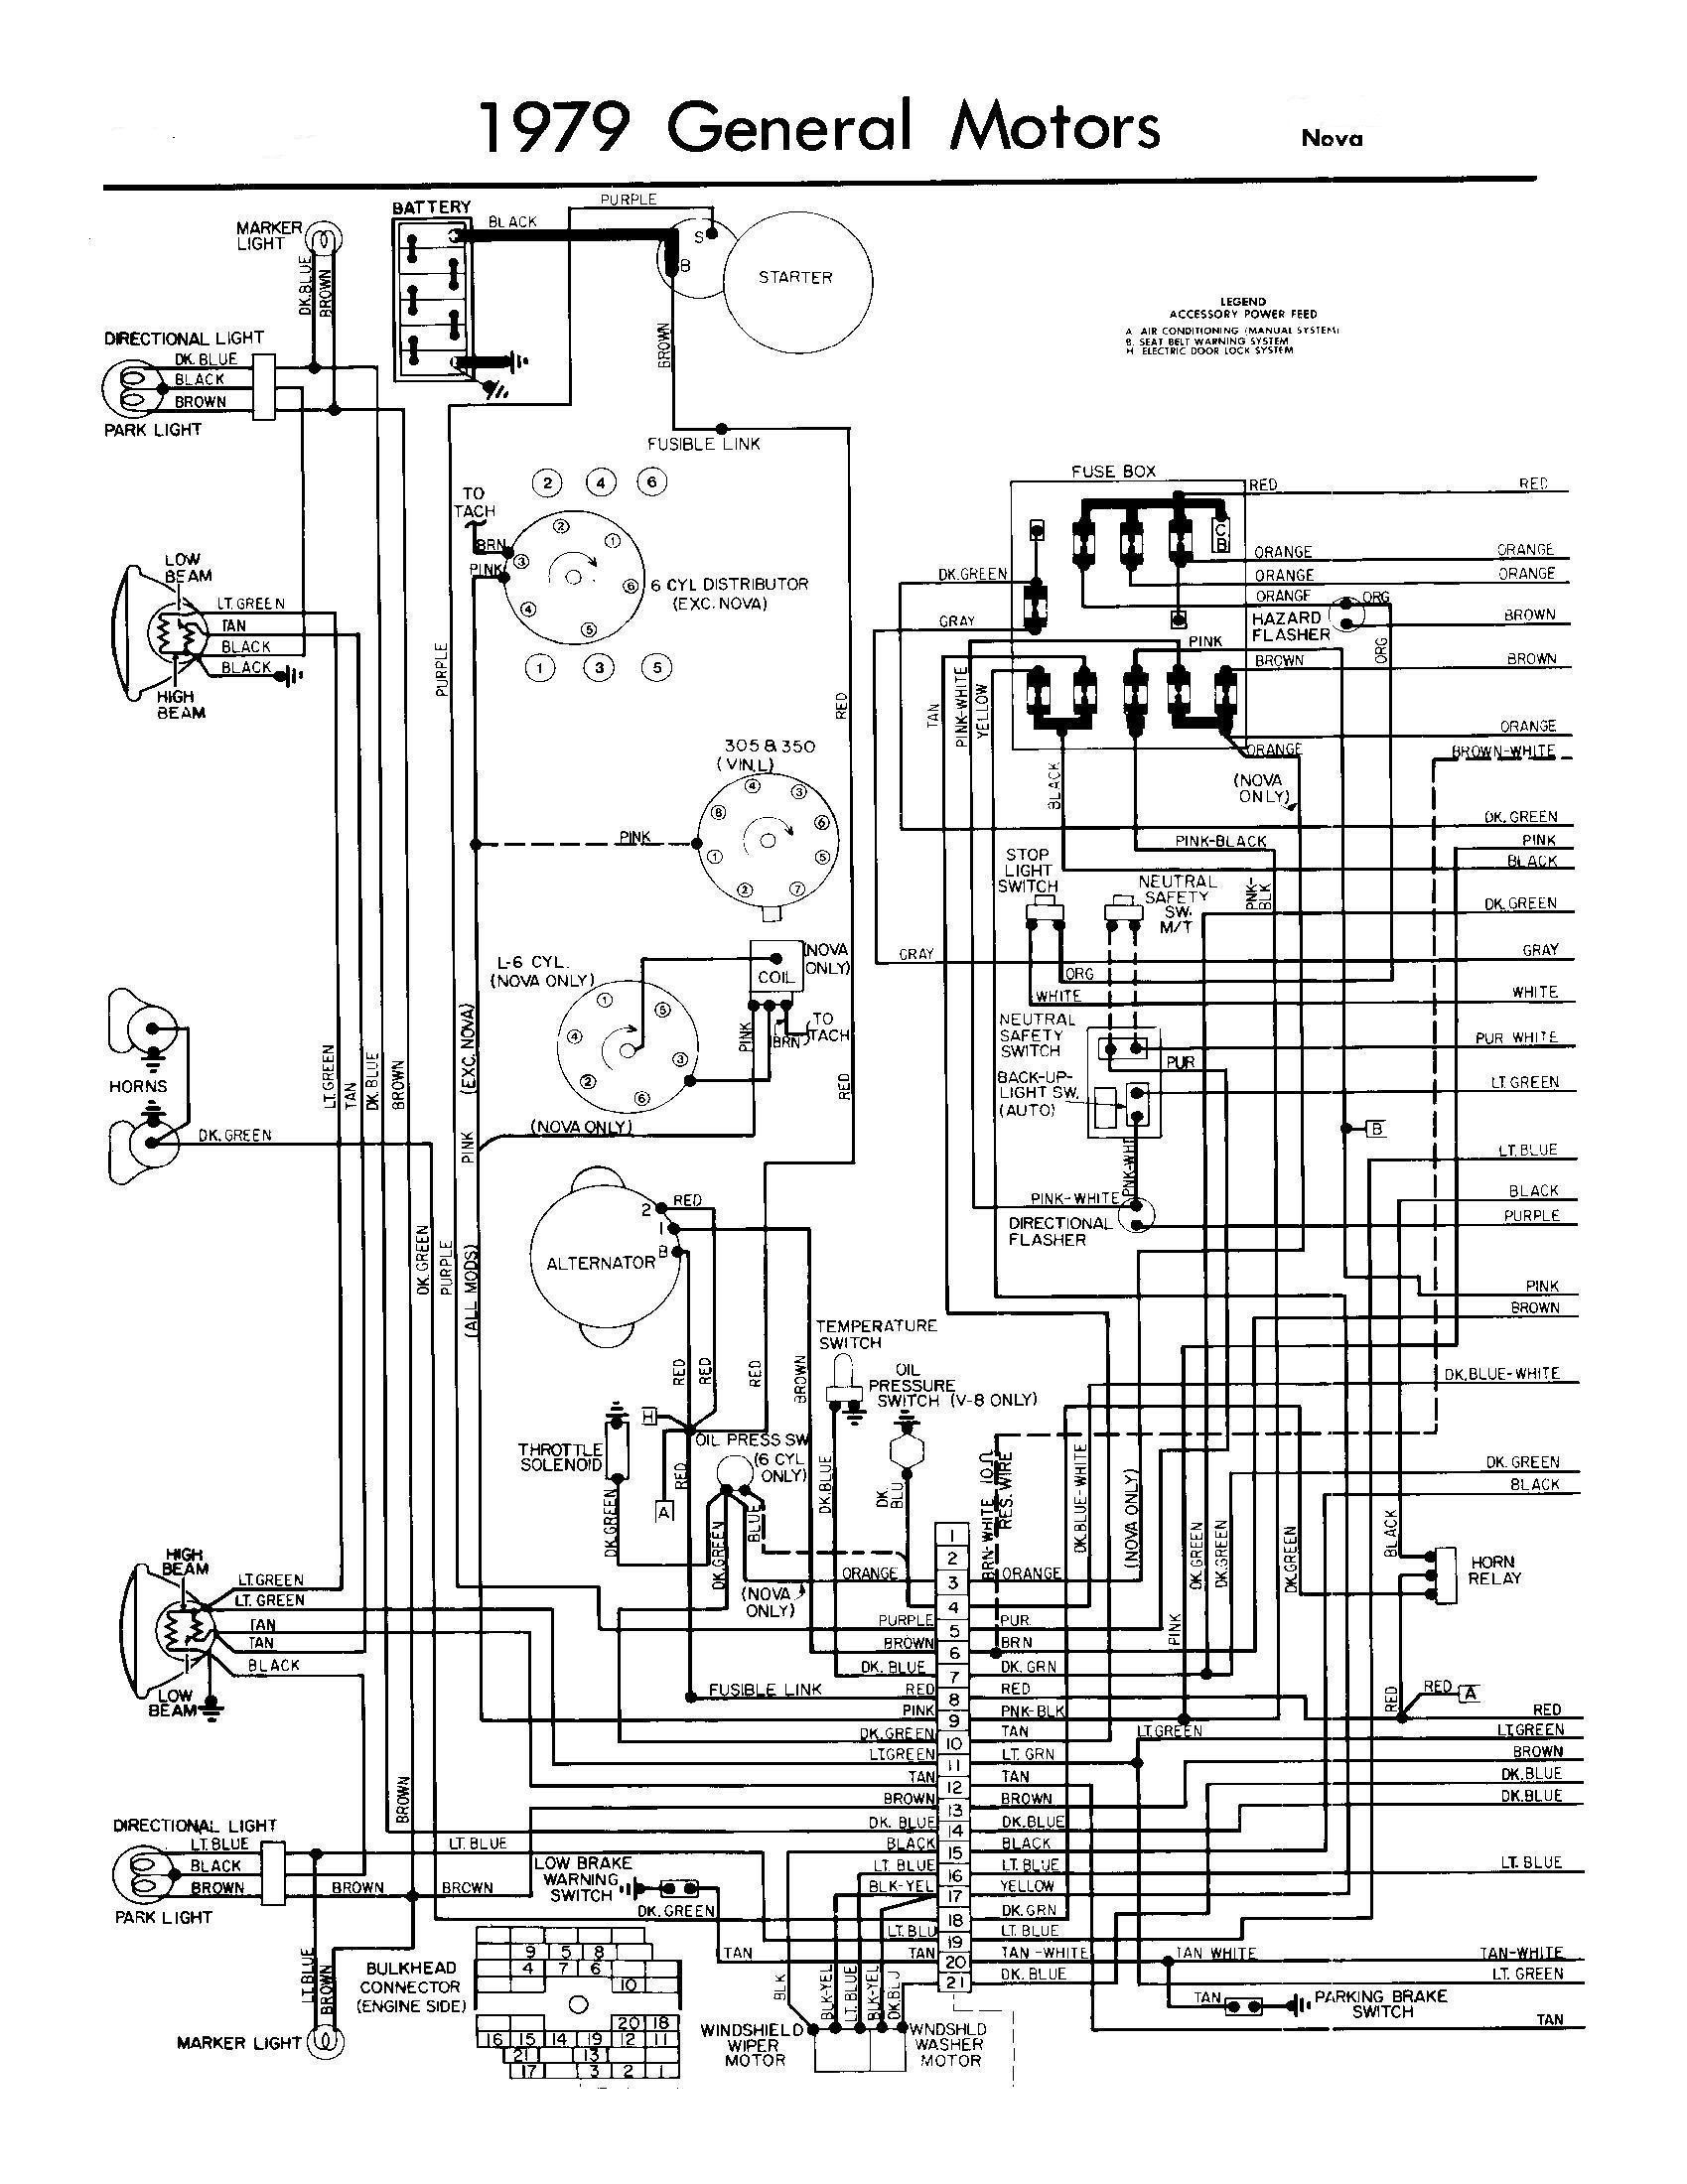 1987 Ford L8000 Alternator Wiring Diagram Books Of 1989 F250 Engine U2022 Rh Mattersoflifecoaching Co